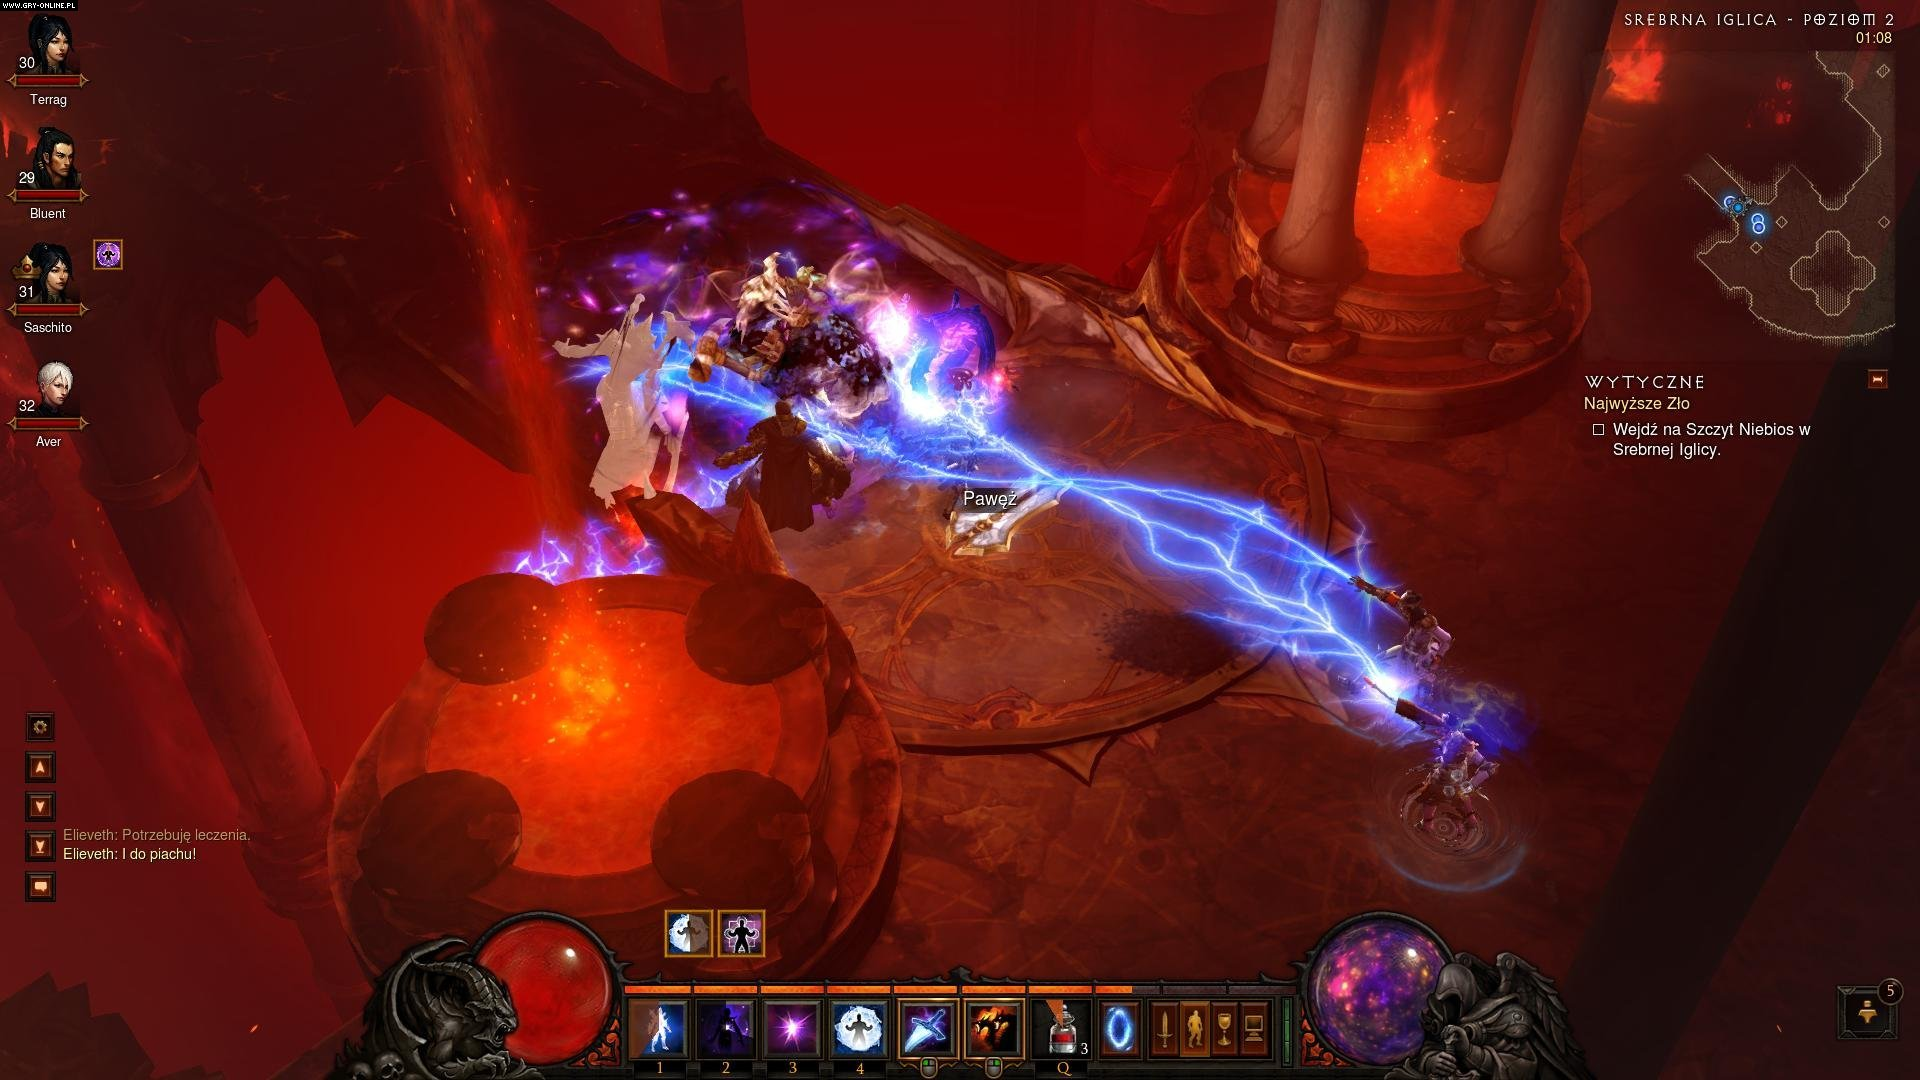 Diablo III PC Gry Screen 46/209, Blizzard Entertainment